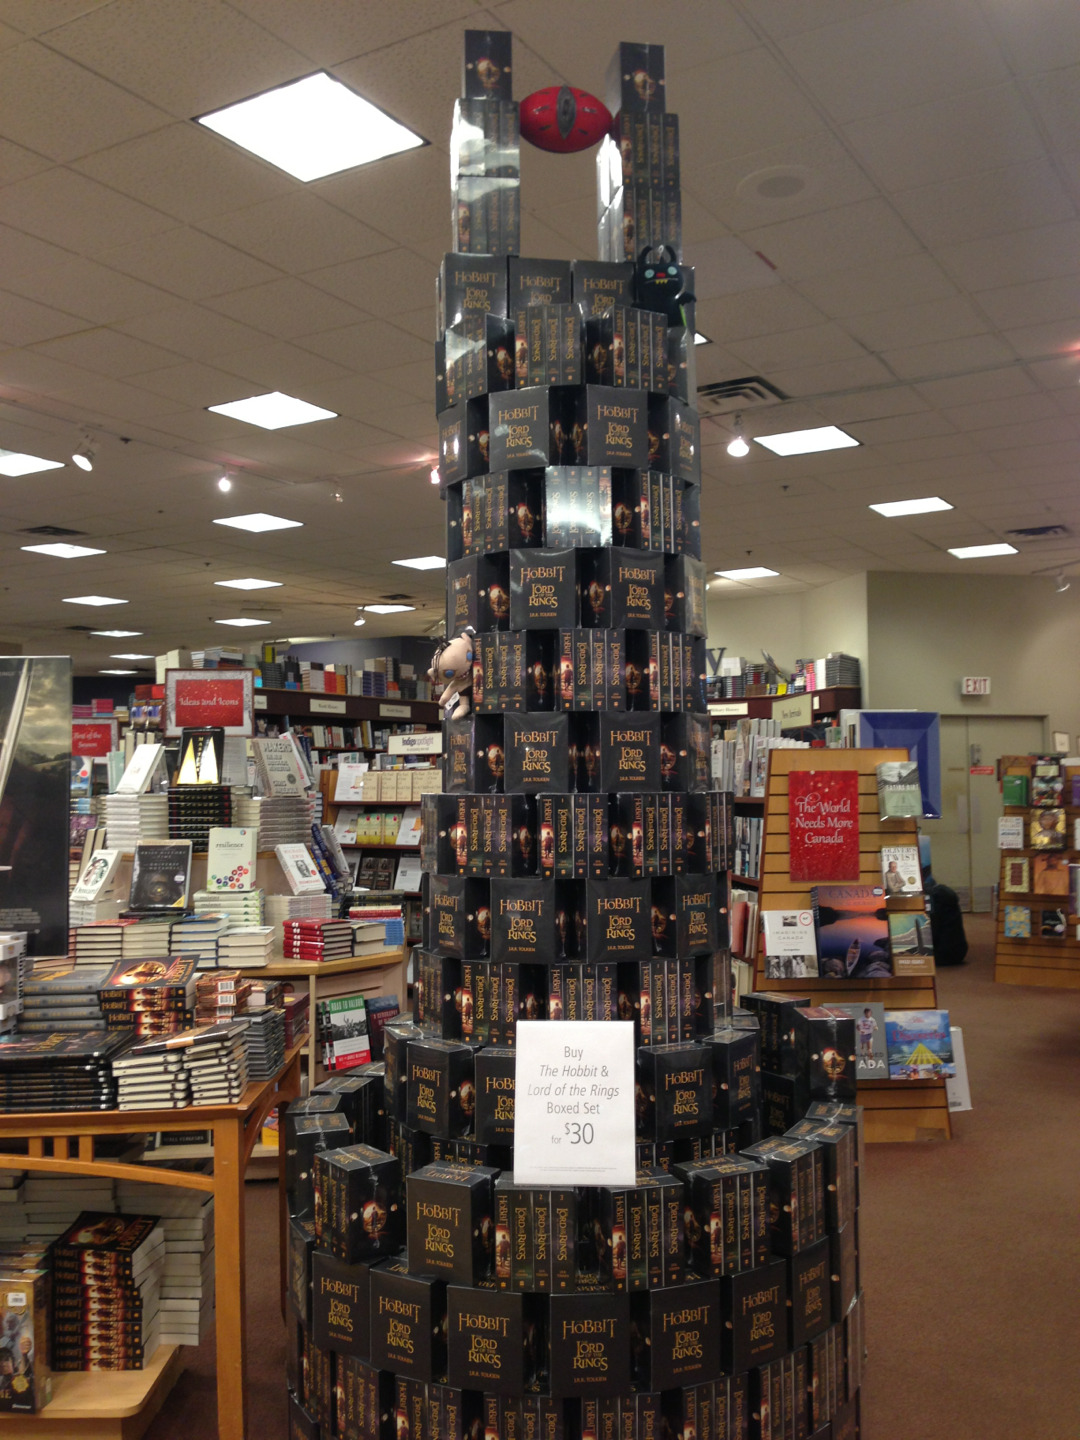 edwardspoonhands:  This is why we need bookstores…